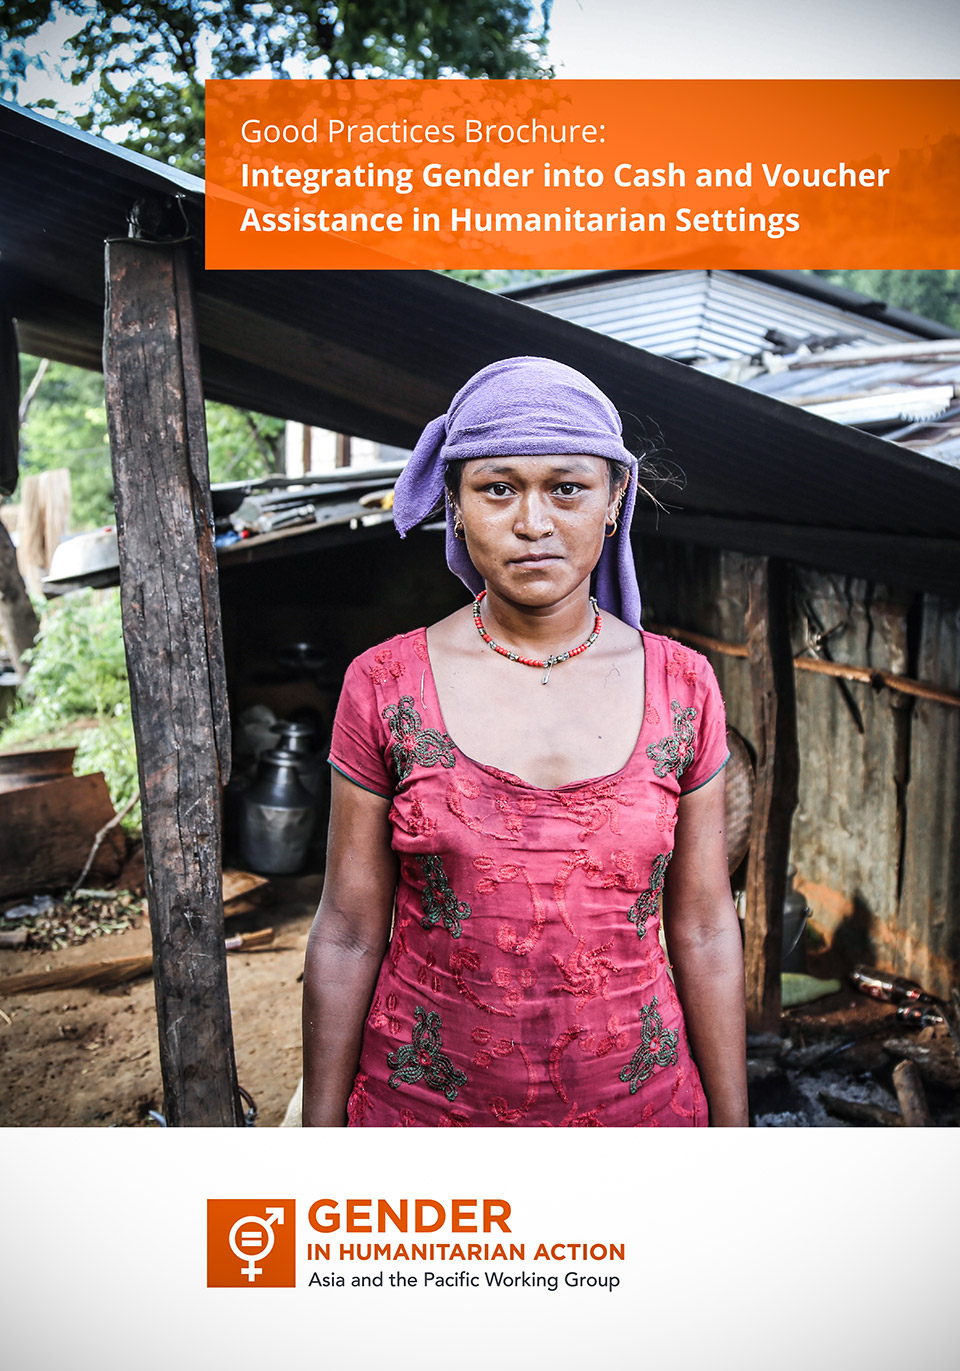 Good Practices Brochure: Integrating Gender into Cash and Voucher Assistance in Humanitarian Settings